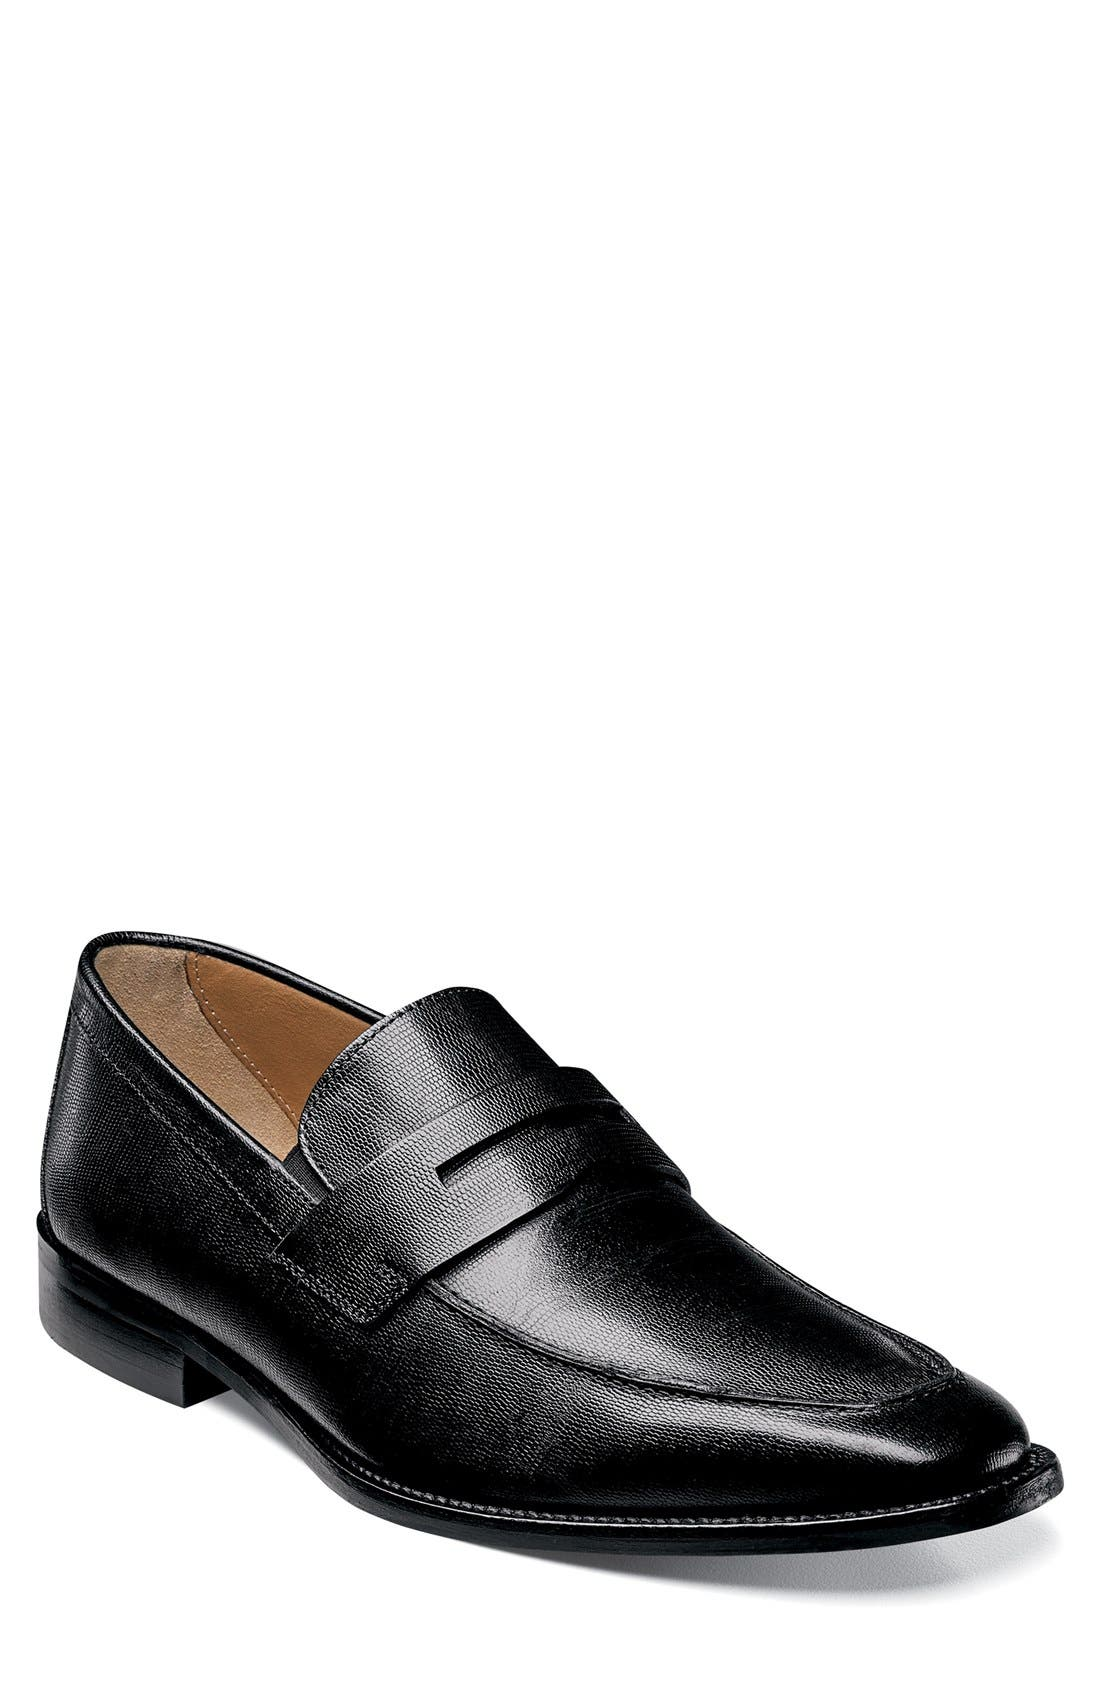 'Sabato' Penny Loafer,                             Main thumbnail 1, color,                             Ebony Leather